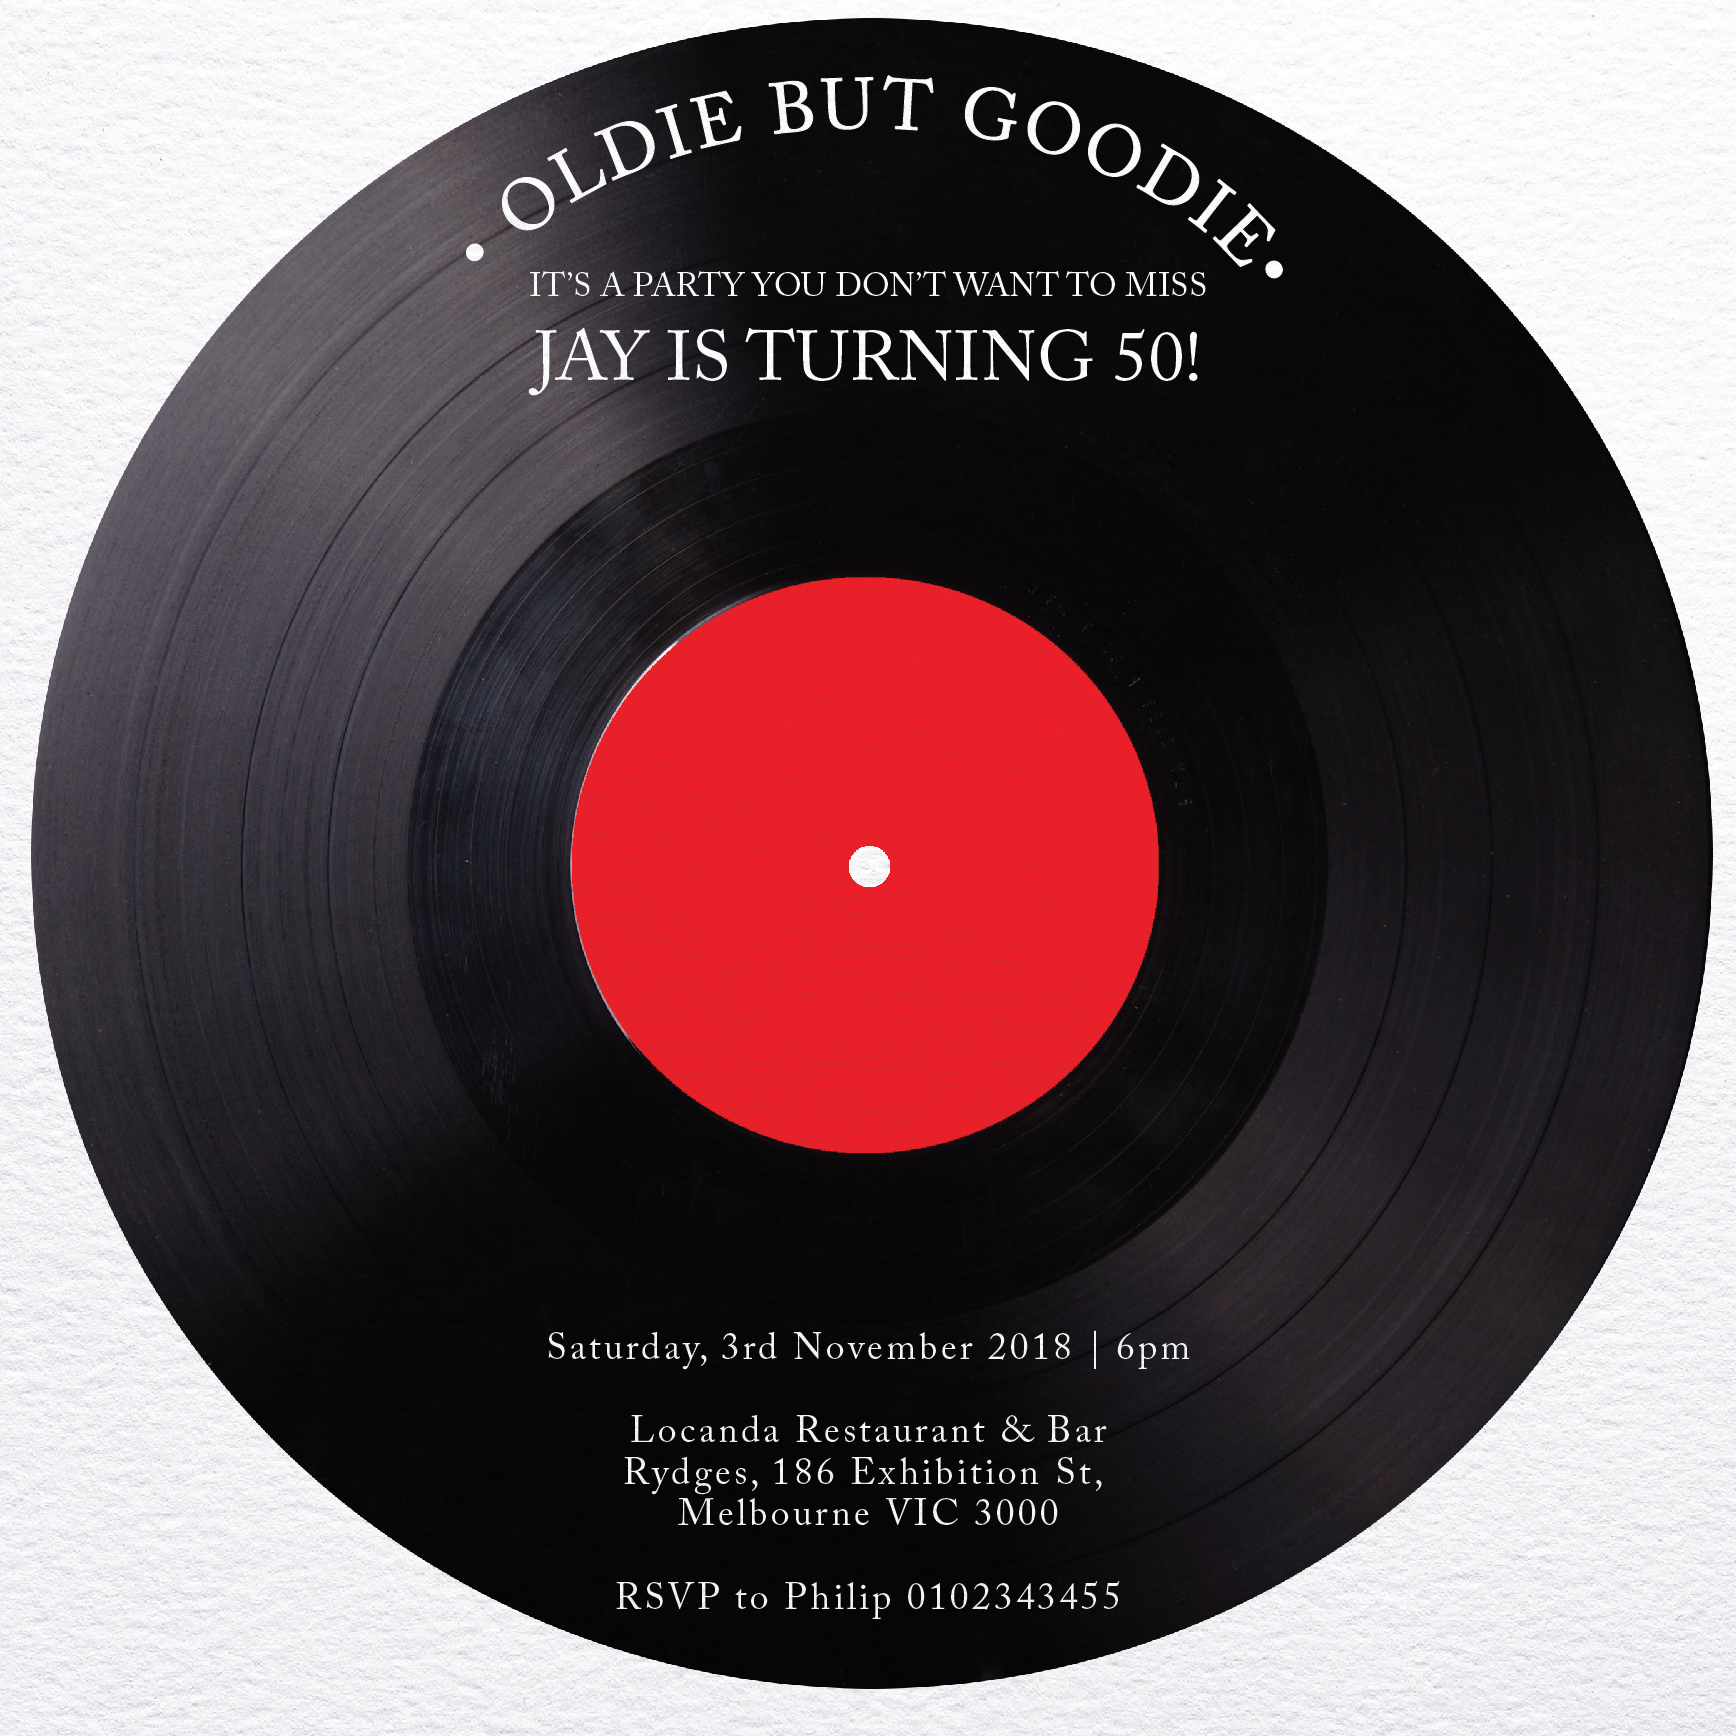 Vinyl Night - Birthday Invitations